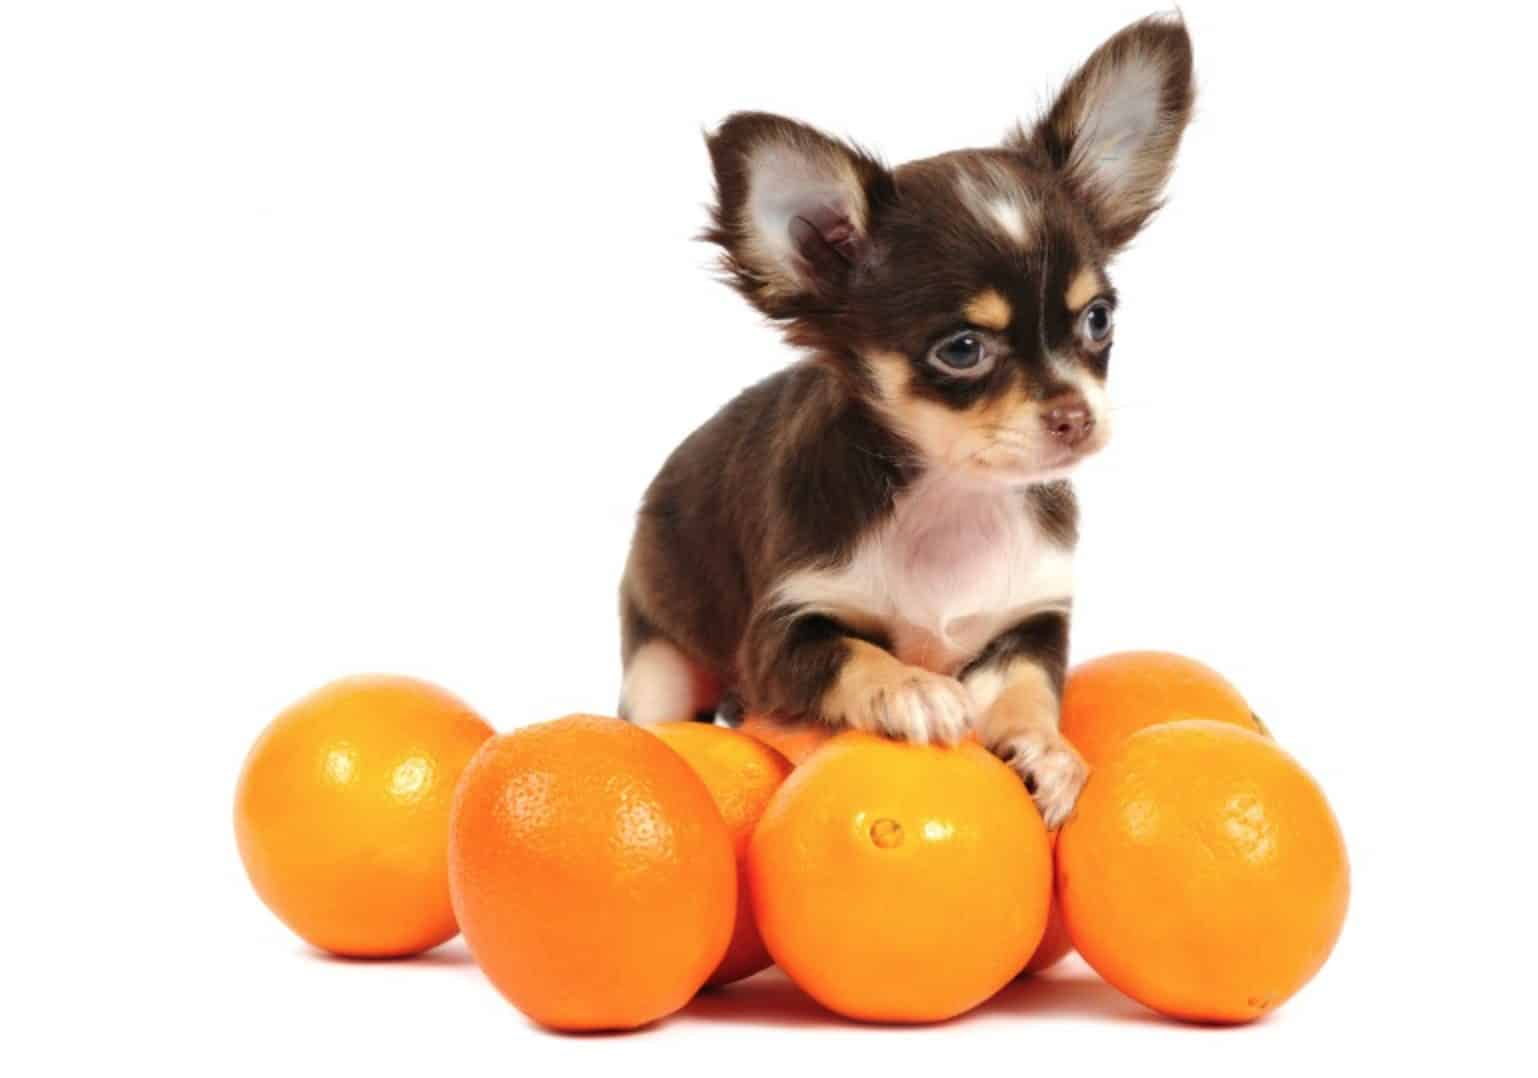 The main health benefit of dogs eating oranges is the Vitamin C.